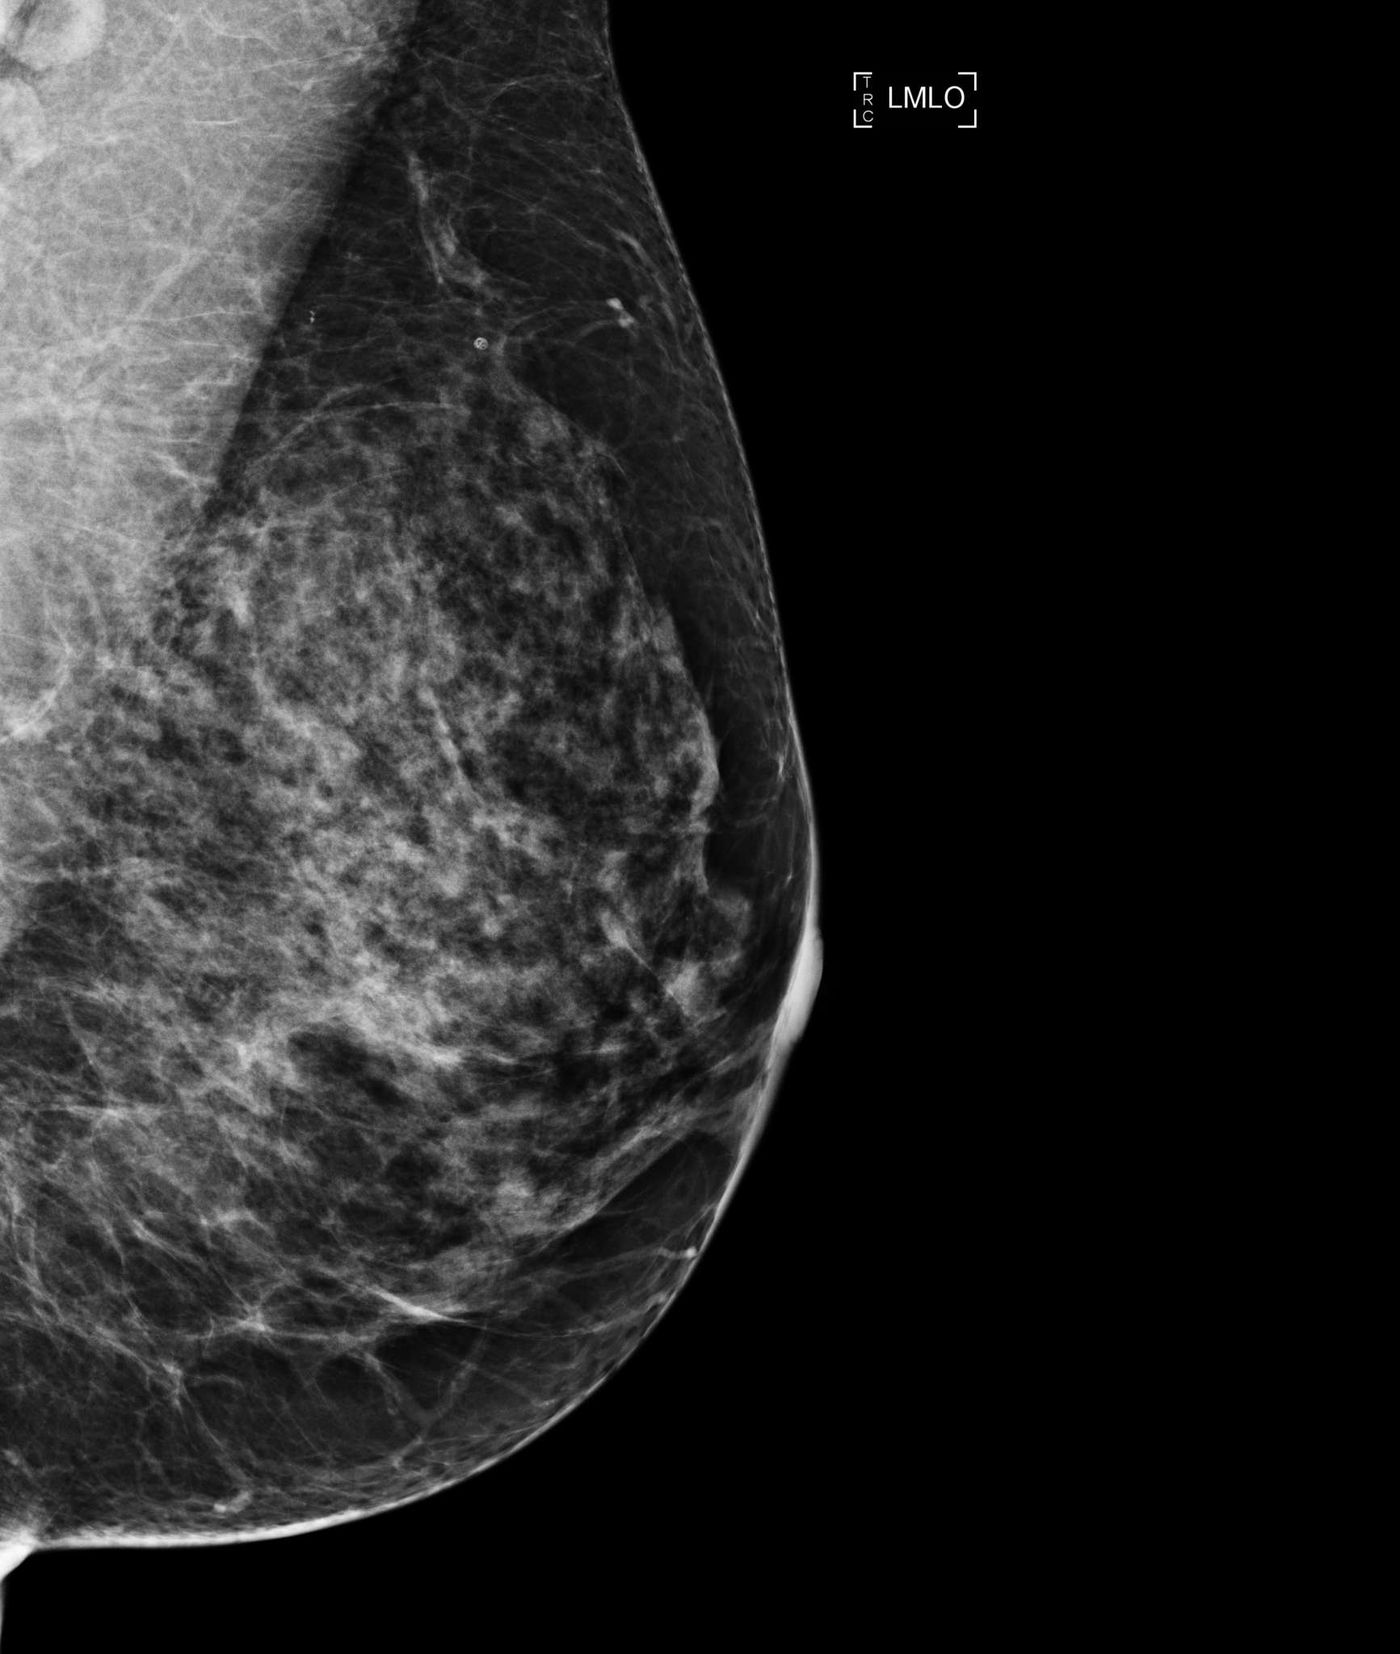 Breast cancer density laws mean more tests, unclear benefit